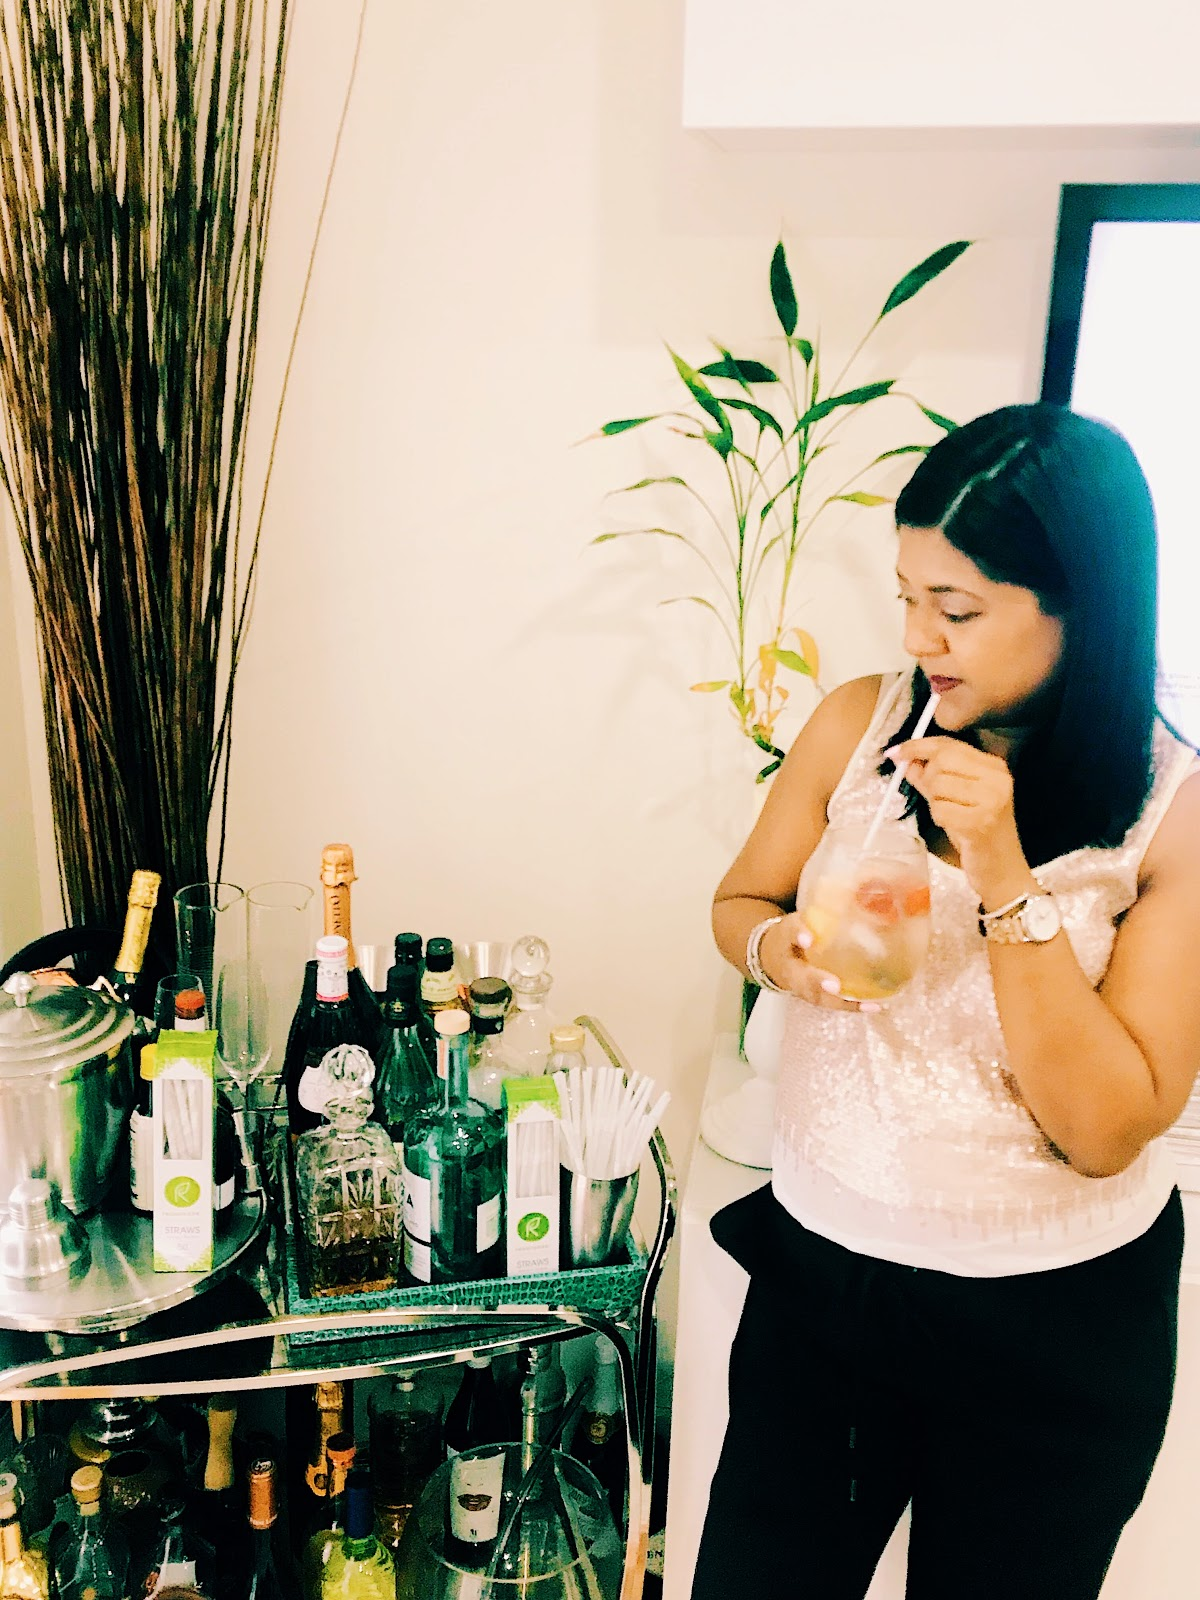 mocktails to enjoy while pregnant, non-alcholic drinks